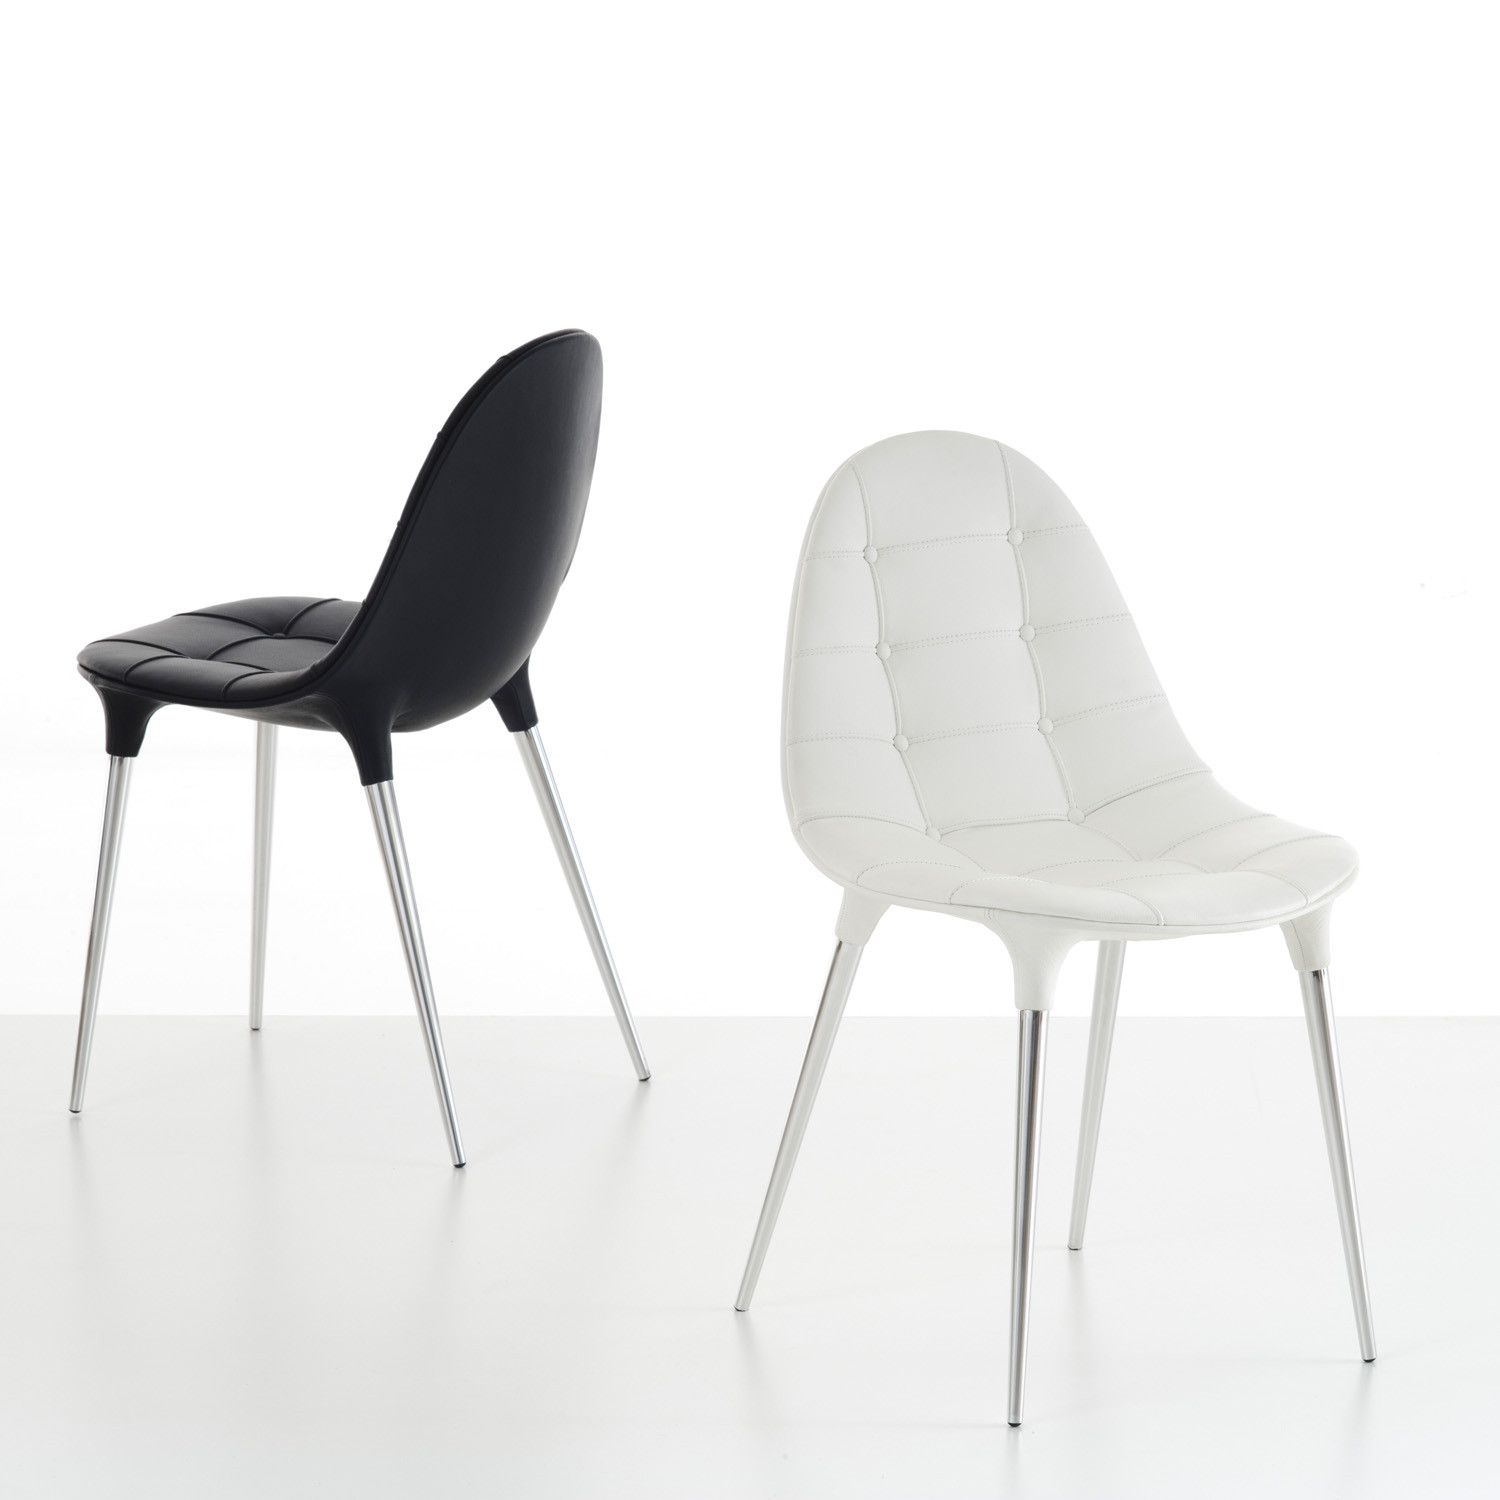 245 Caprice Chairs by Cassina